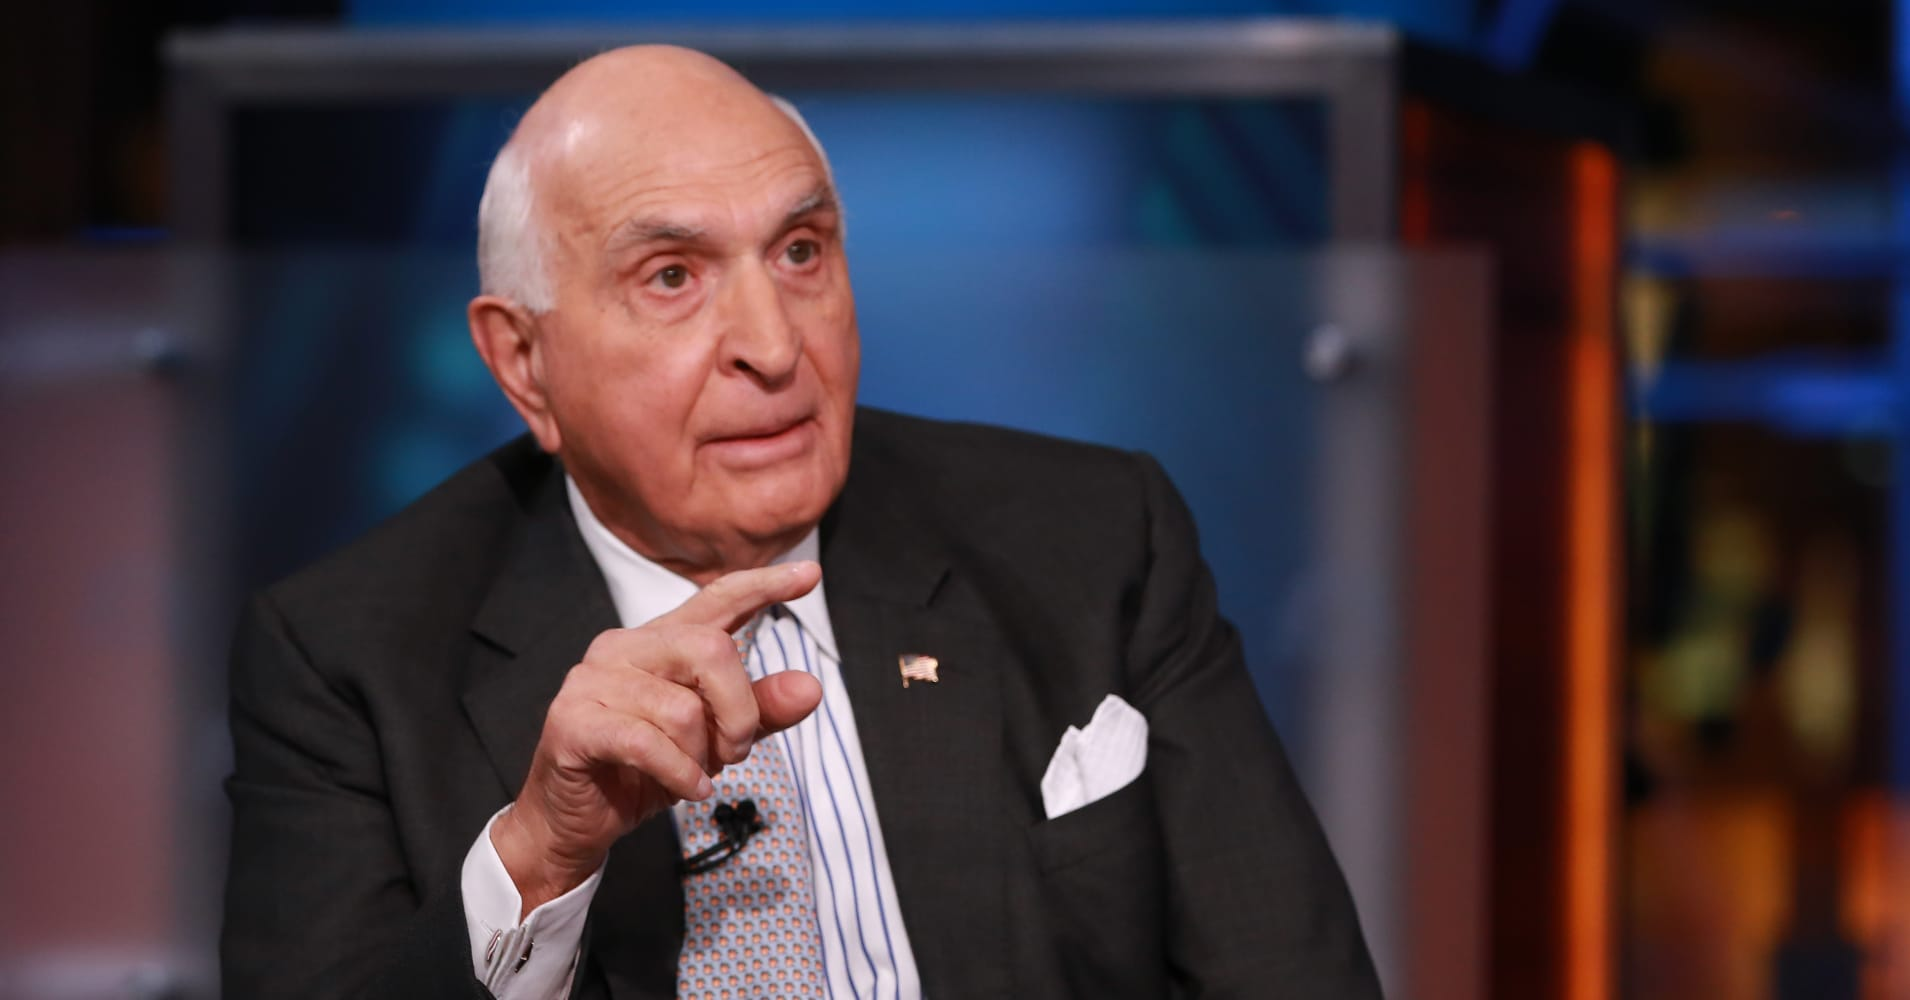 Ken Langone to Trump: It's great to honor job-saving promises, but the US is not a managed economy